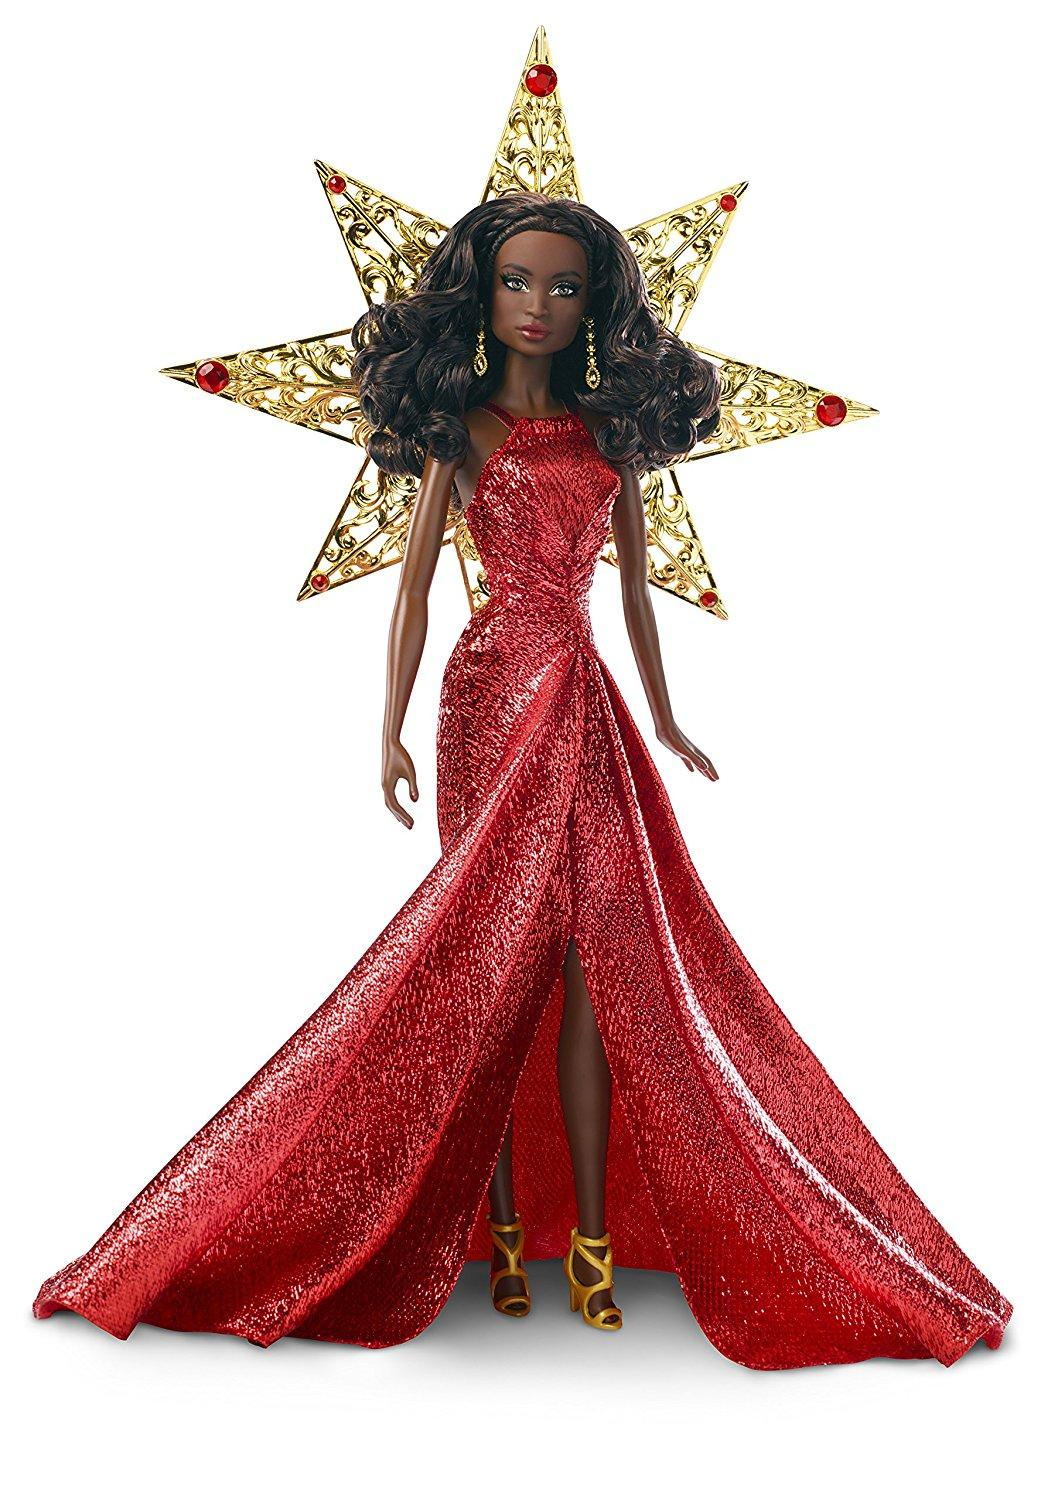 Amazon.com: Barbie 2017 Holiday Nikki Black Hair with Red ...